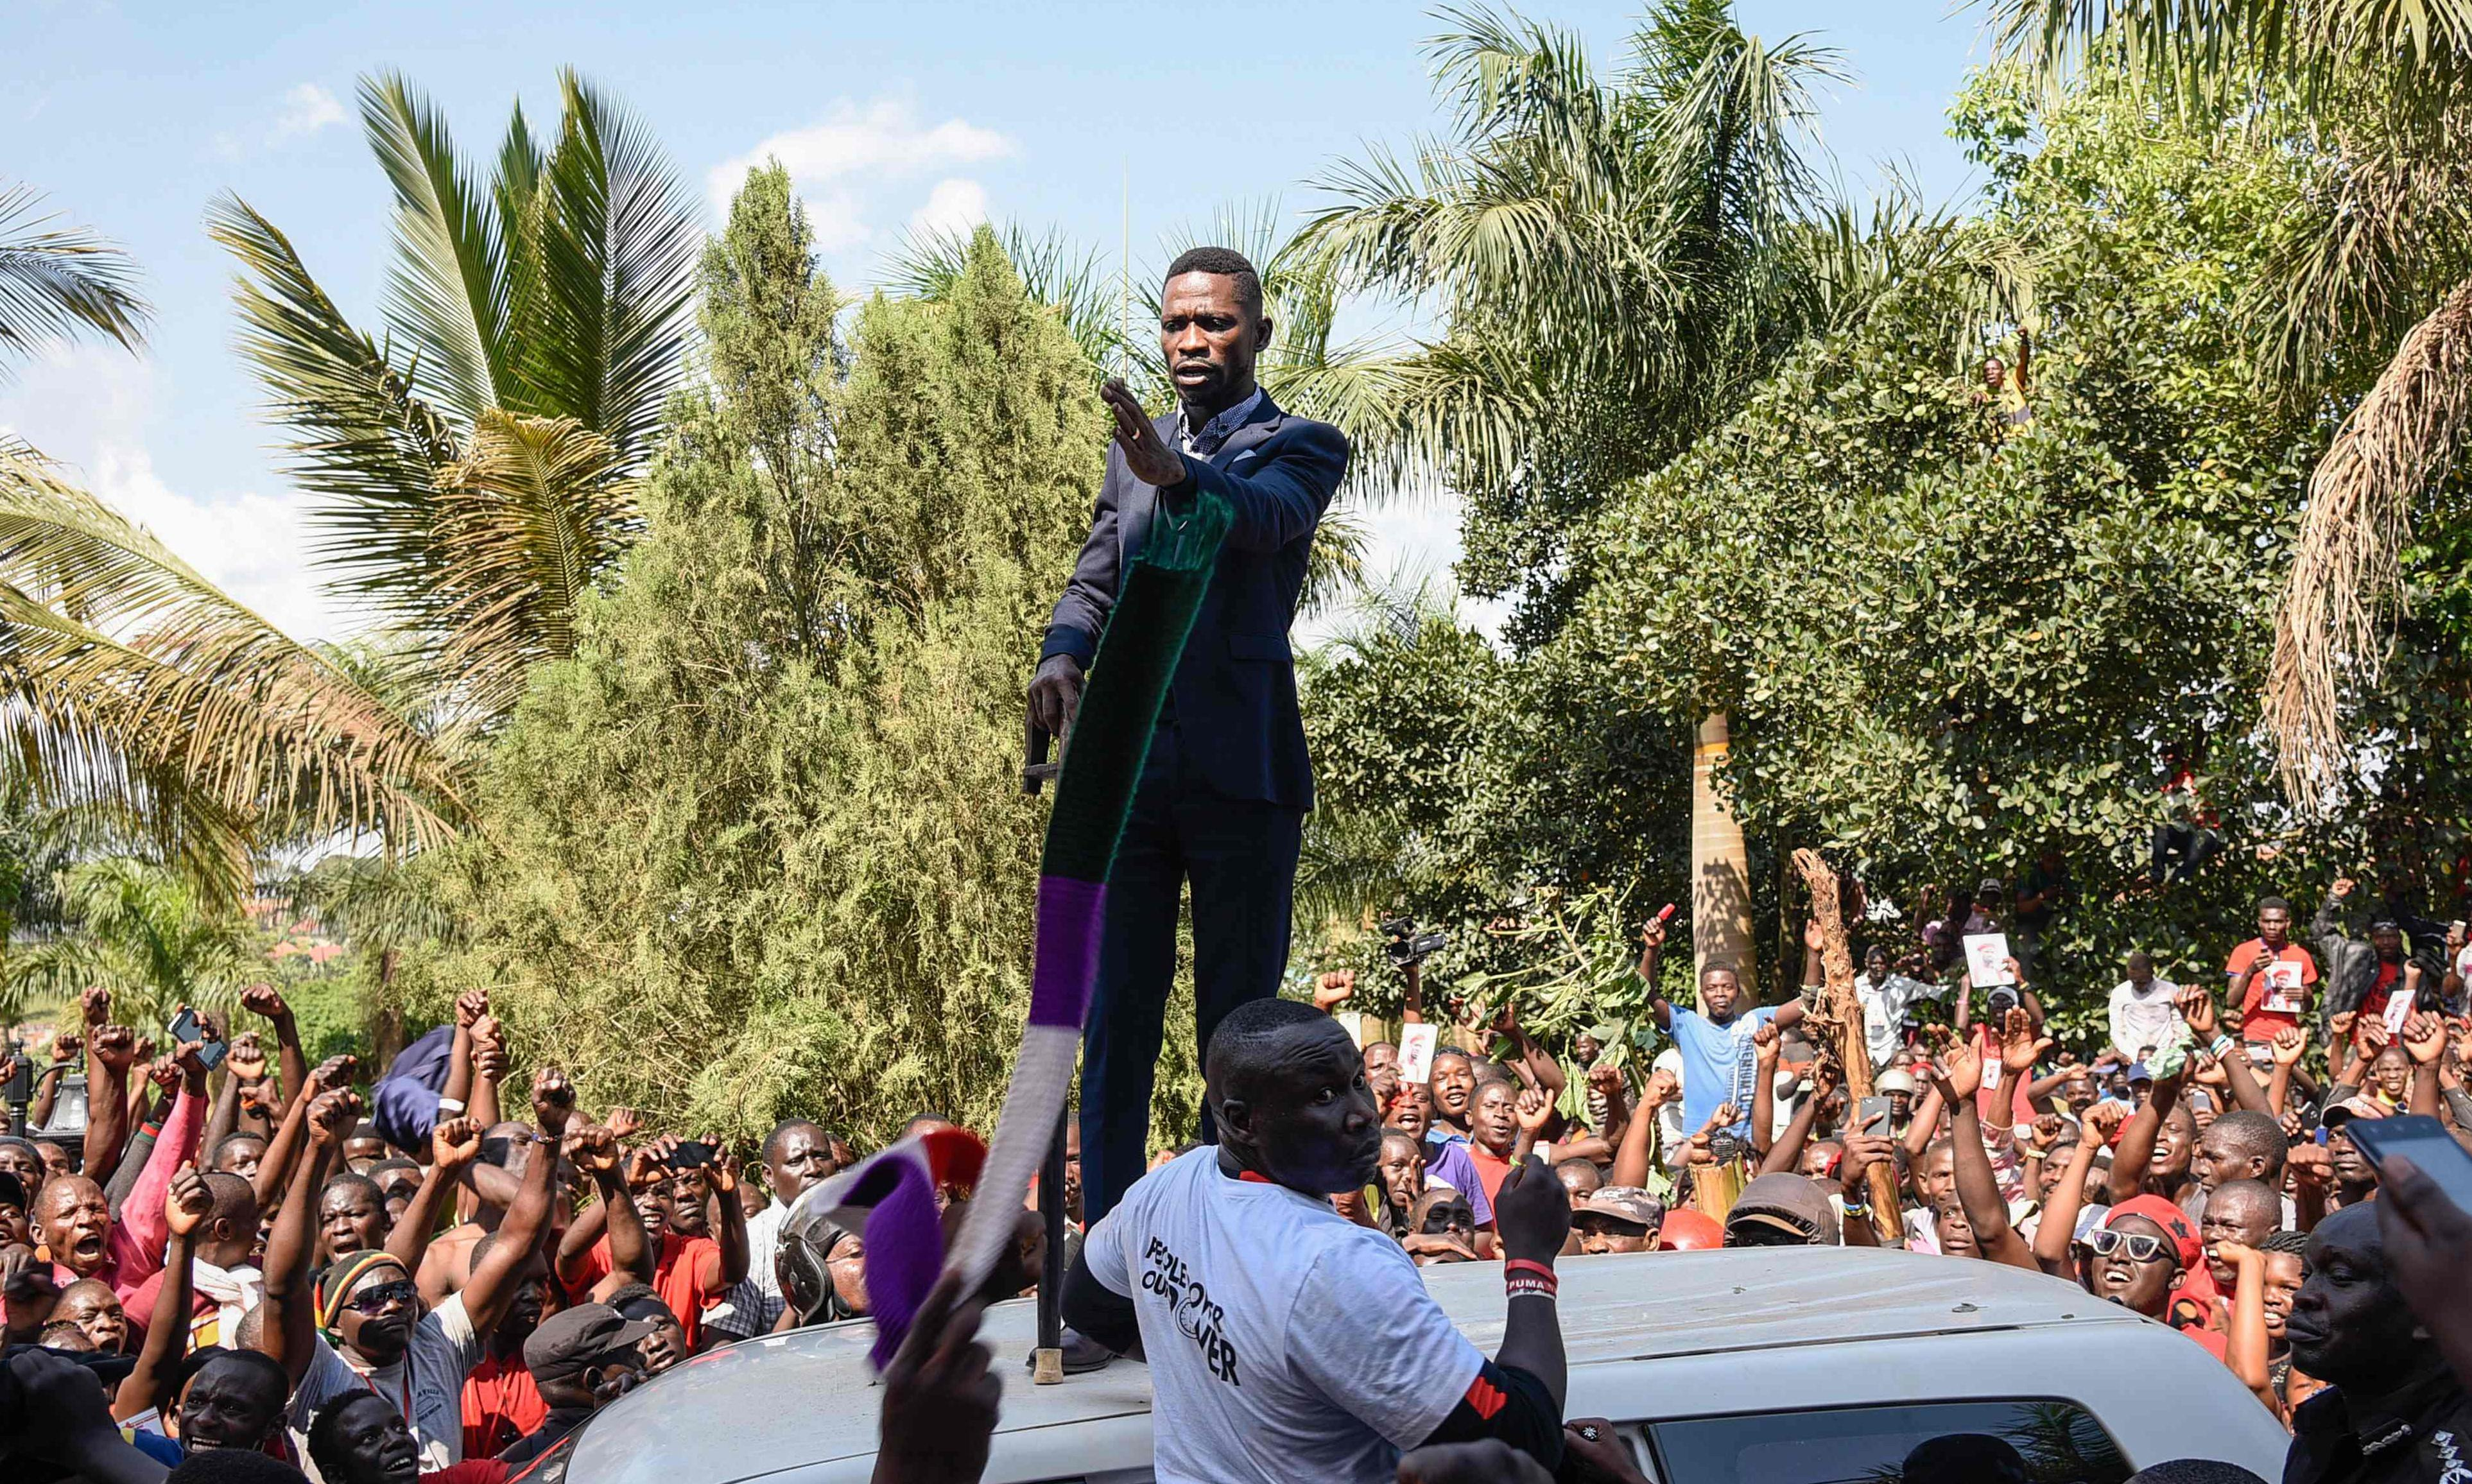 Young Africa: new wave of politicians challenges old guard